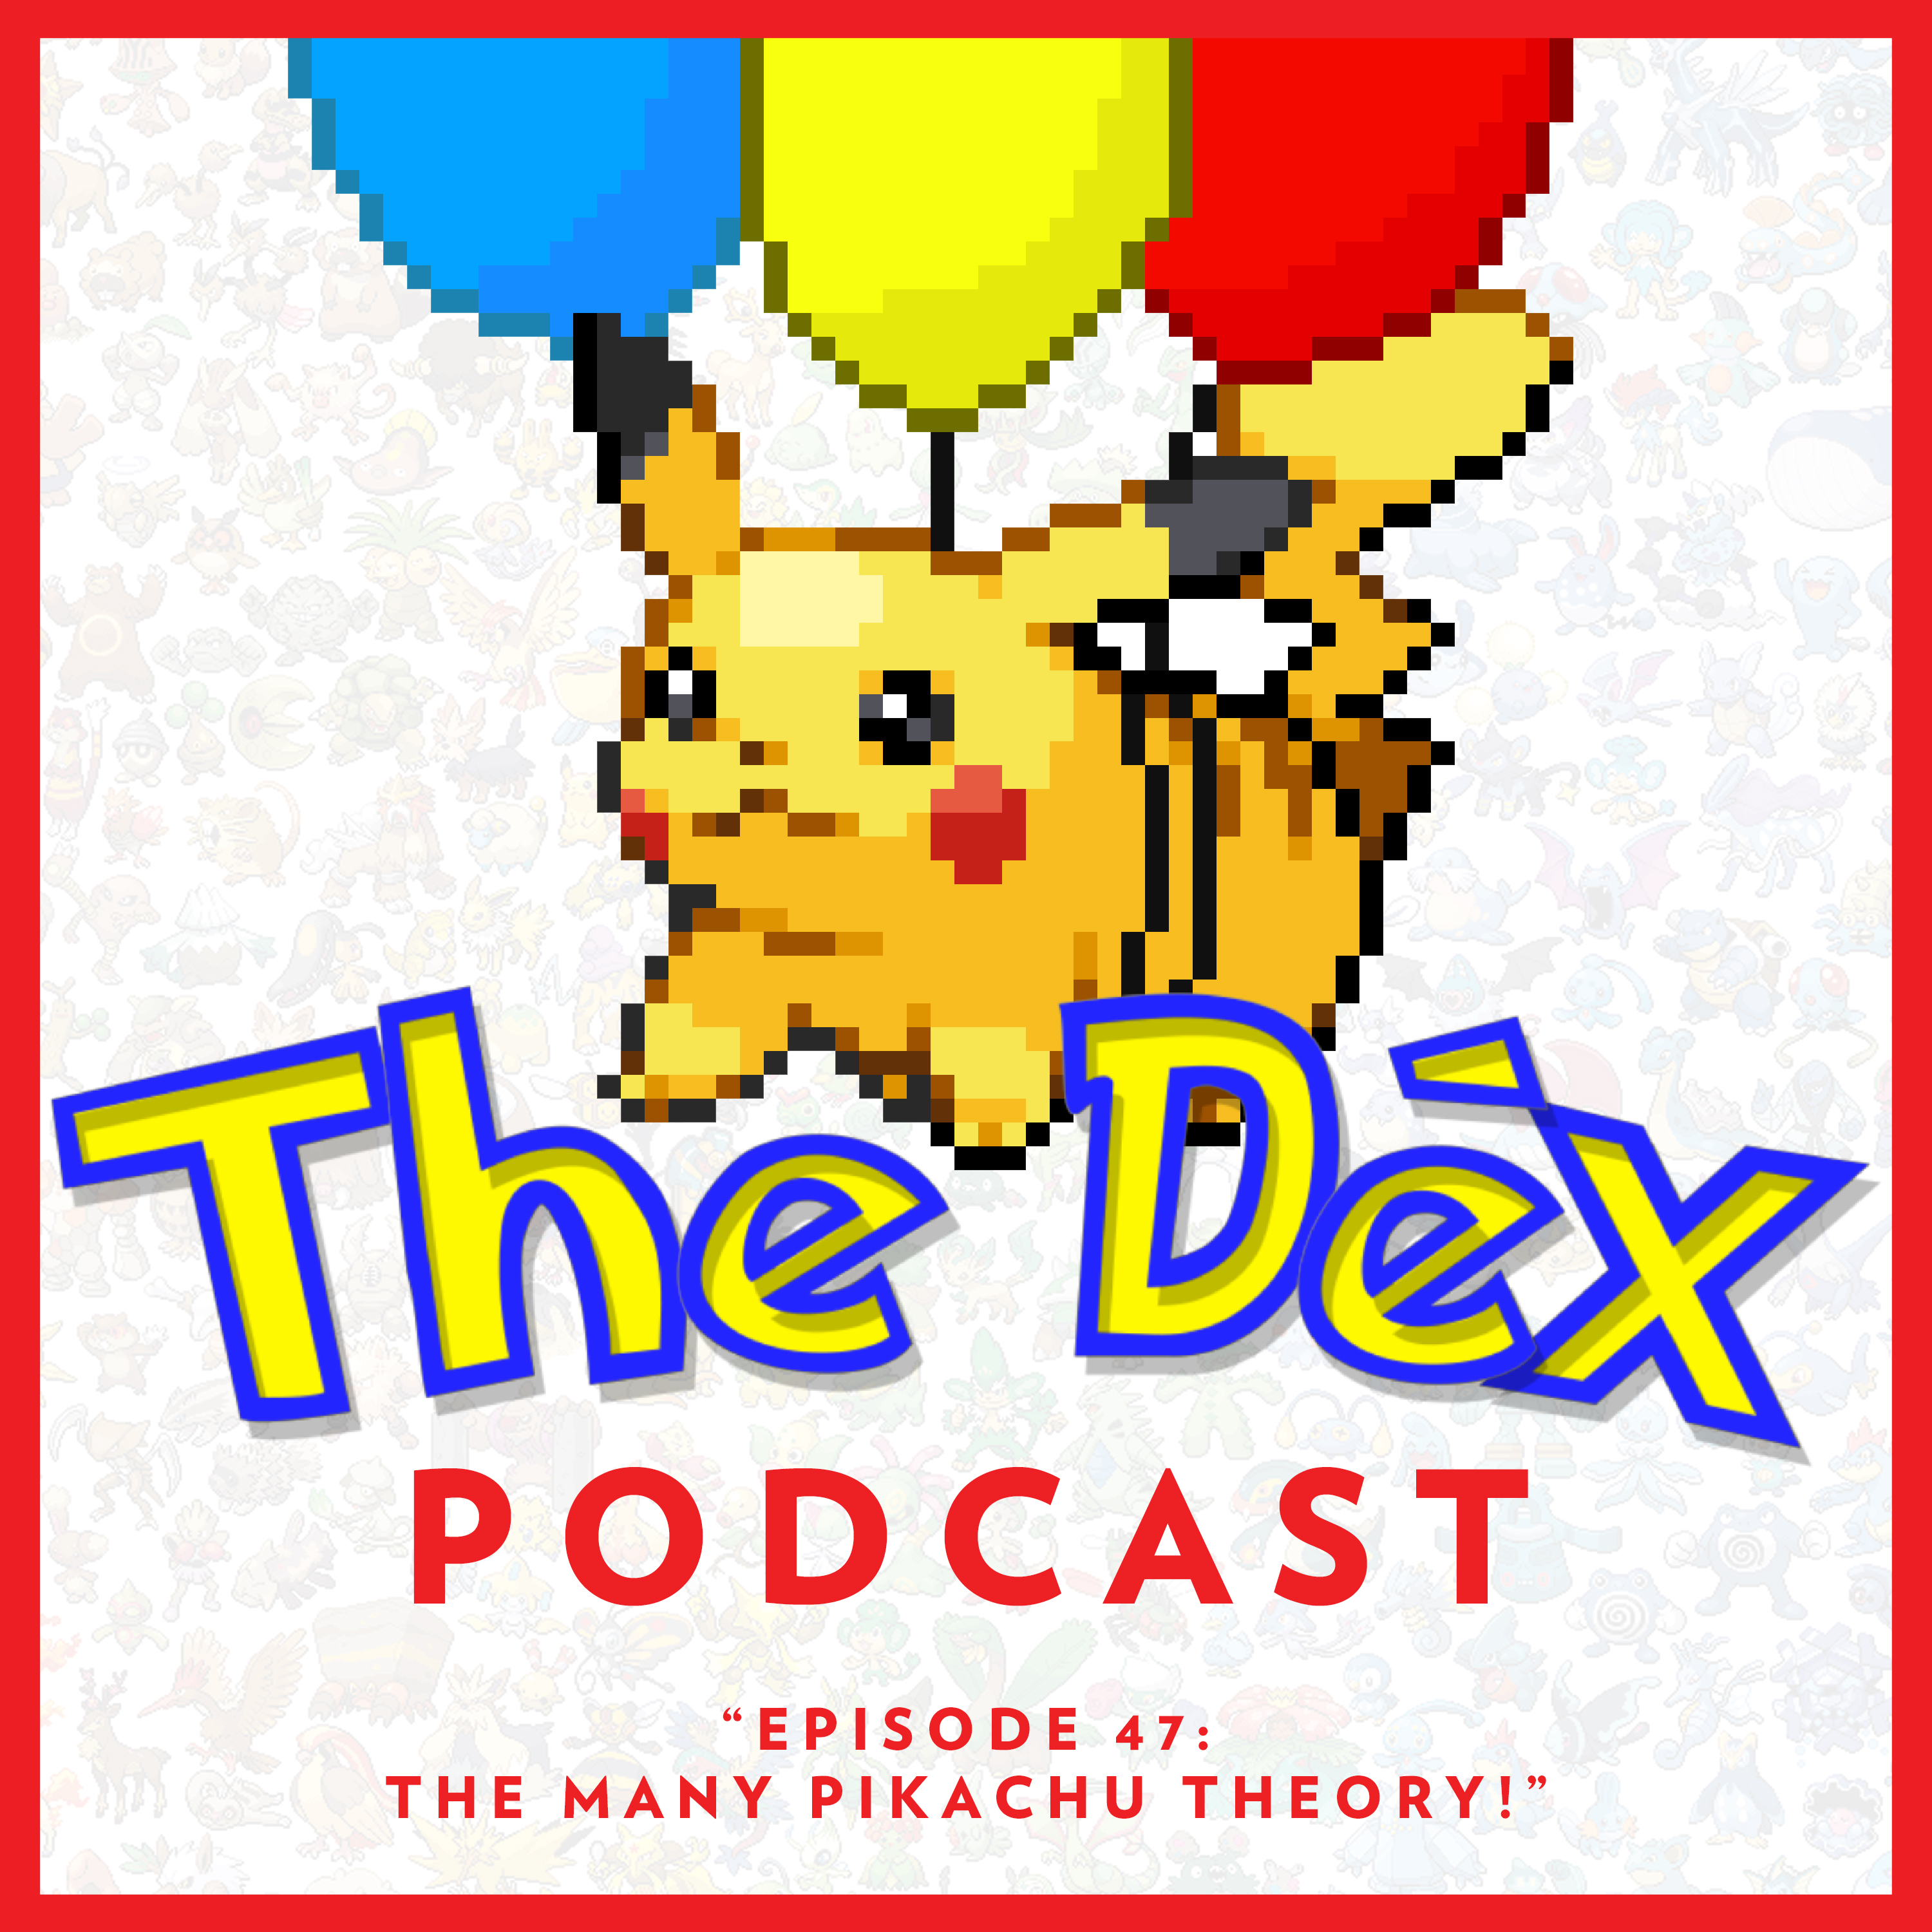 The Dex! Podcast #47: The Many Pikachu Theory!